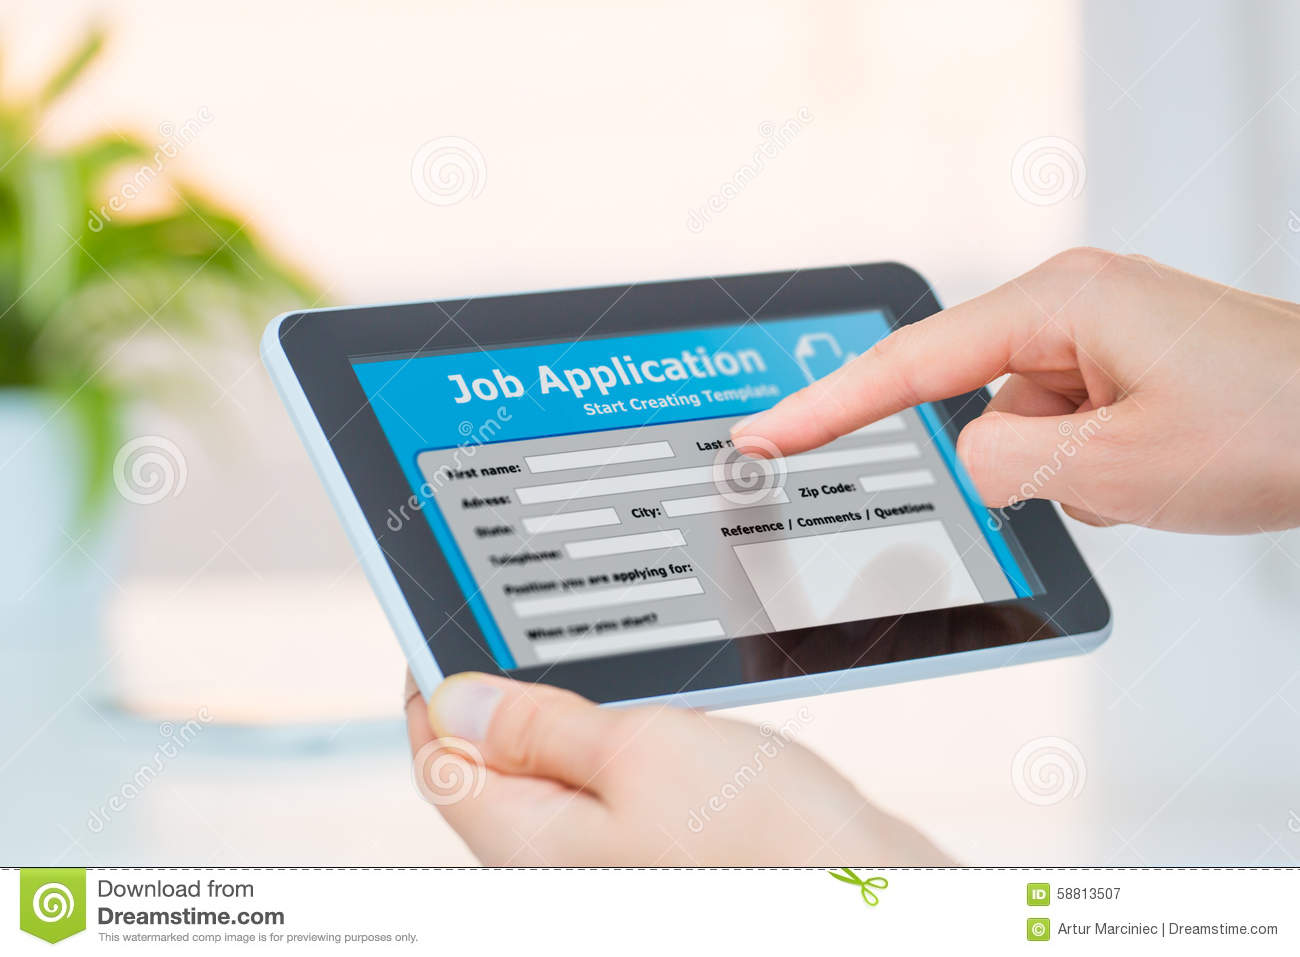 chance for job interview for online application